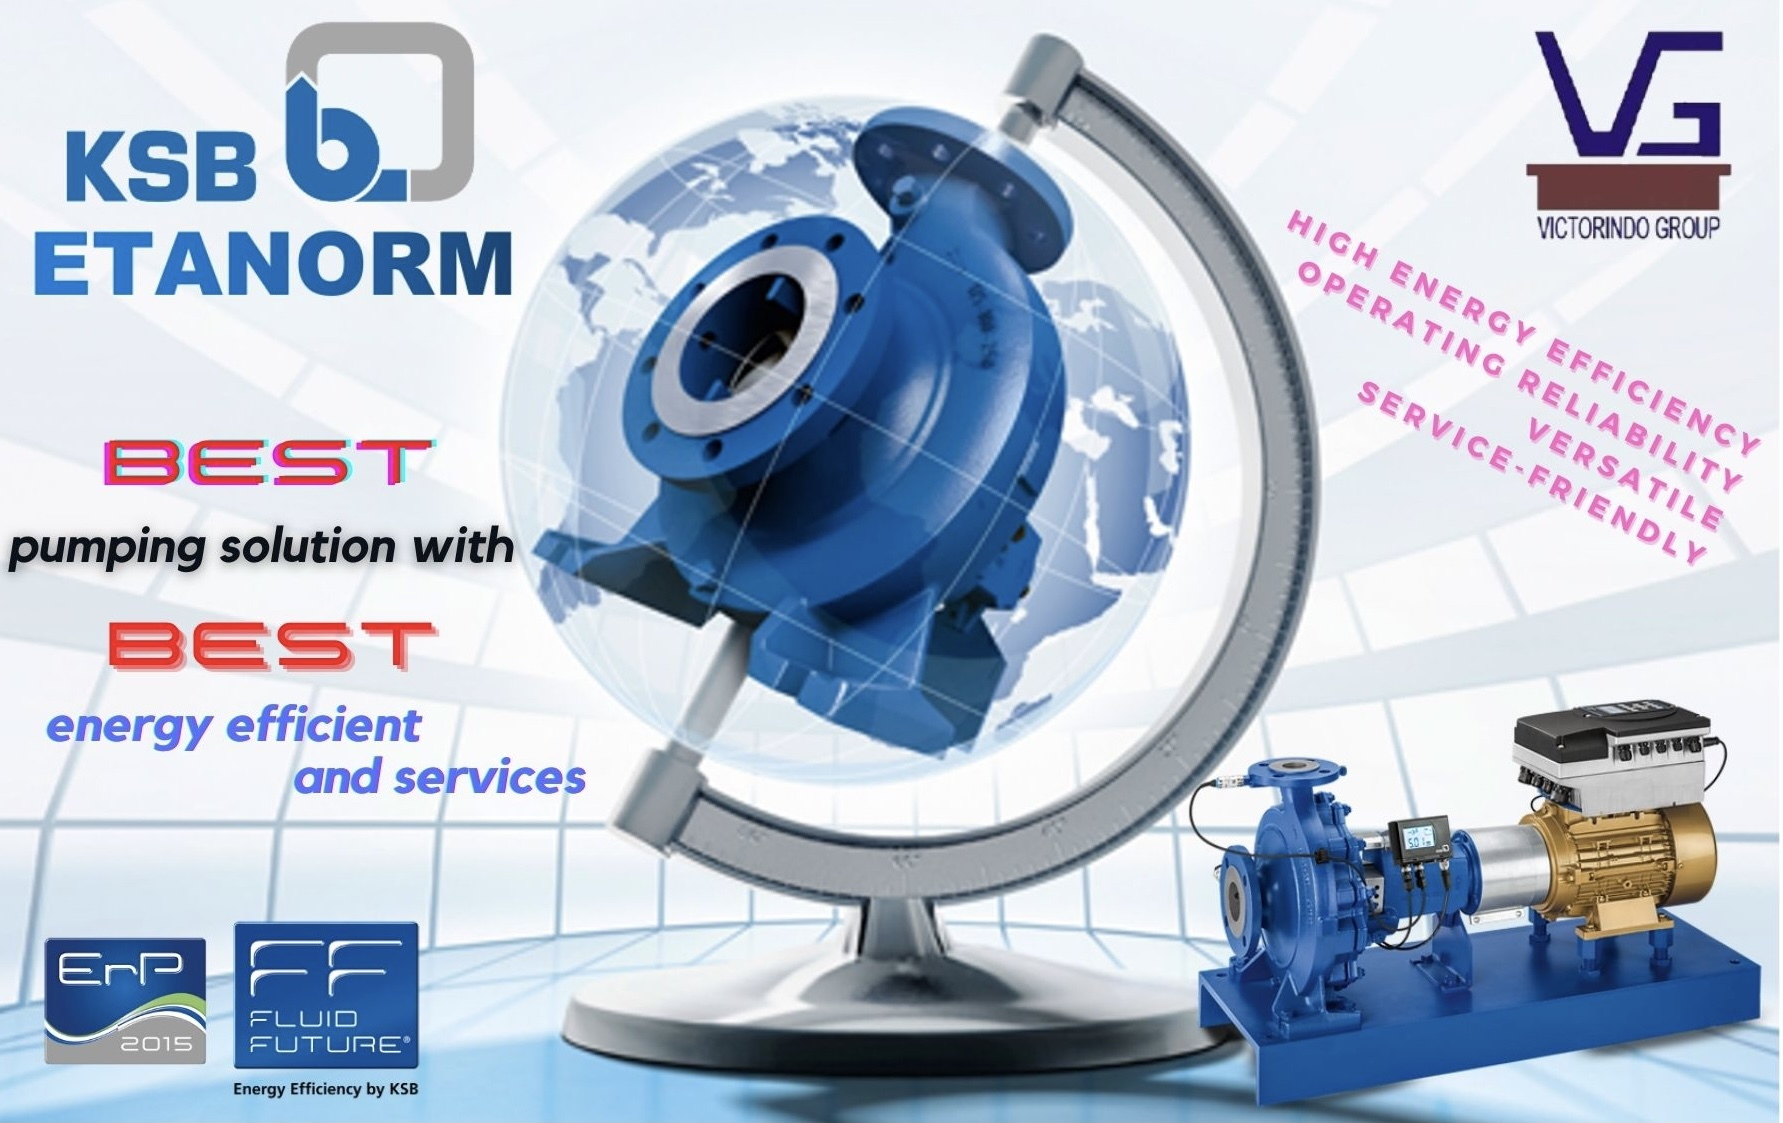 Etanorm - KSB's Global Pump (Best Pumping Solution with Best Efficiency & Services)